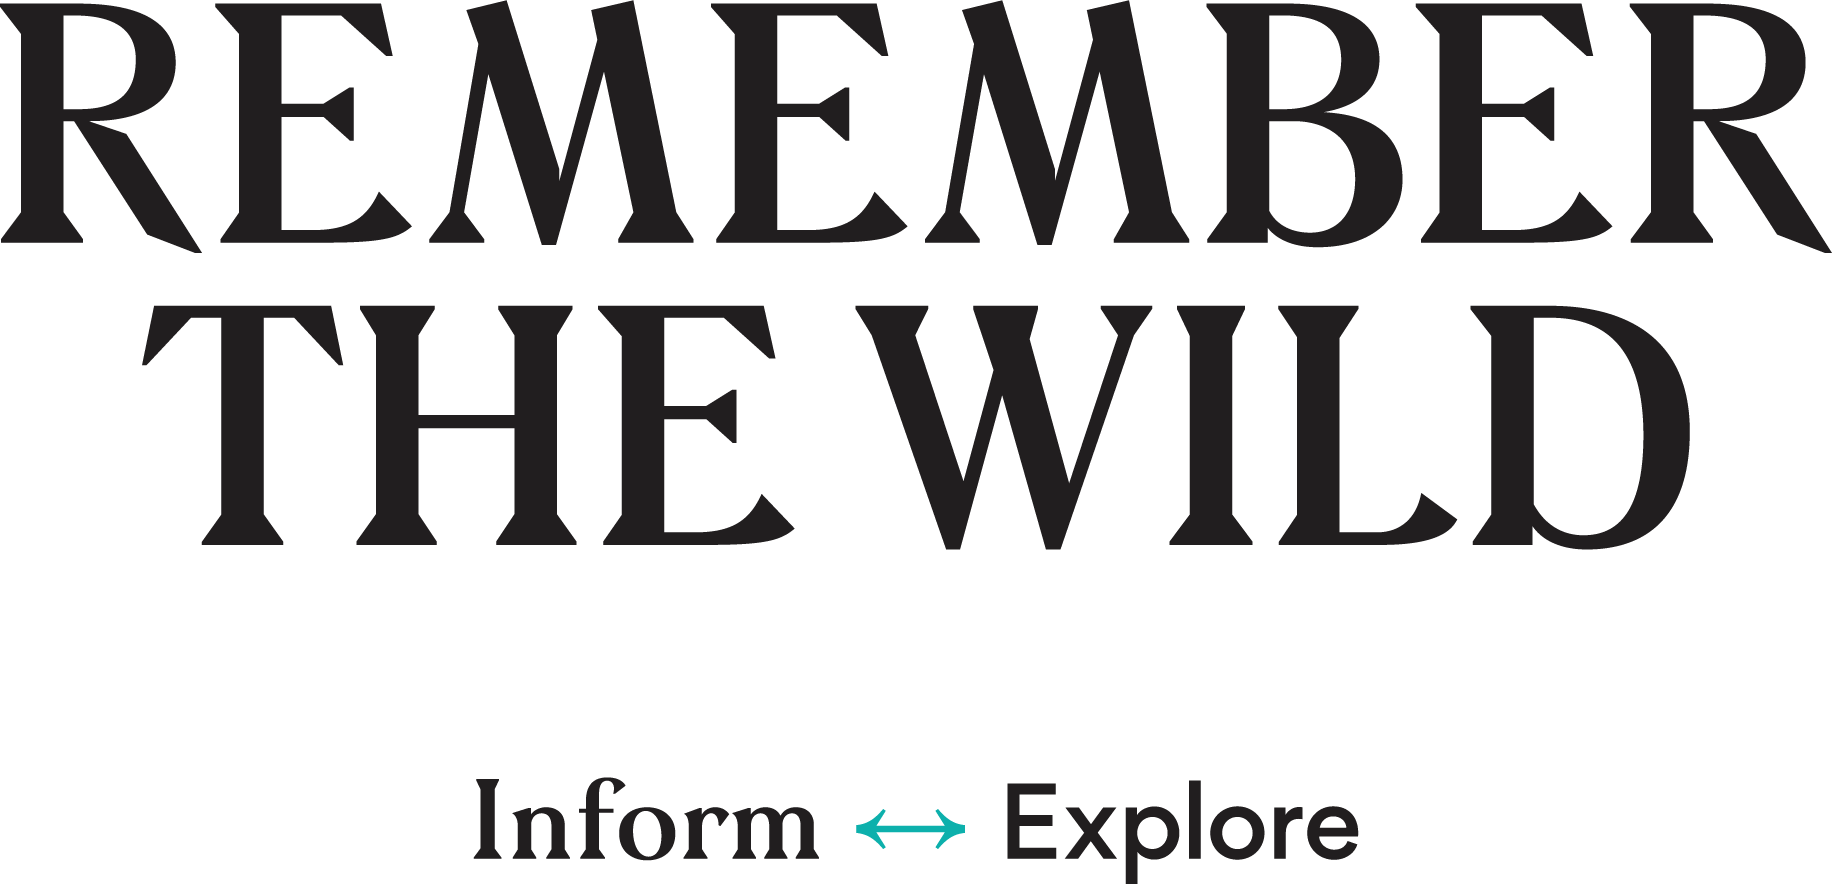 Remember the Wild logo